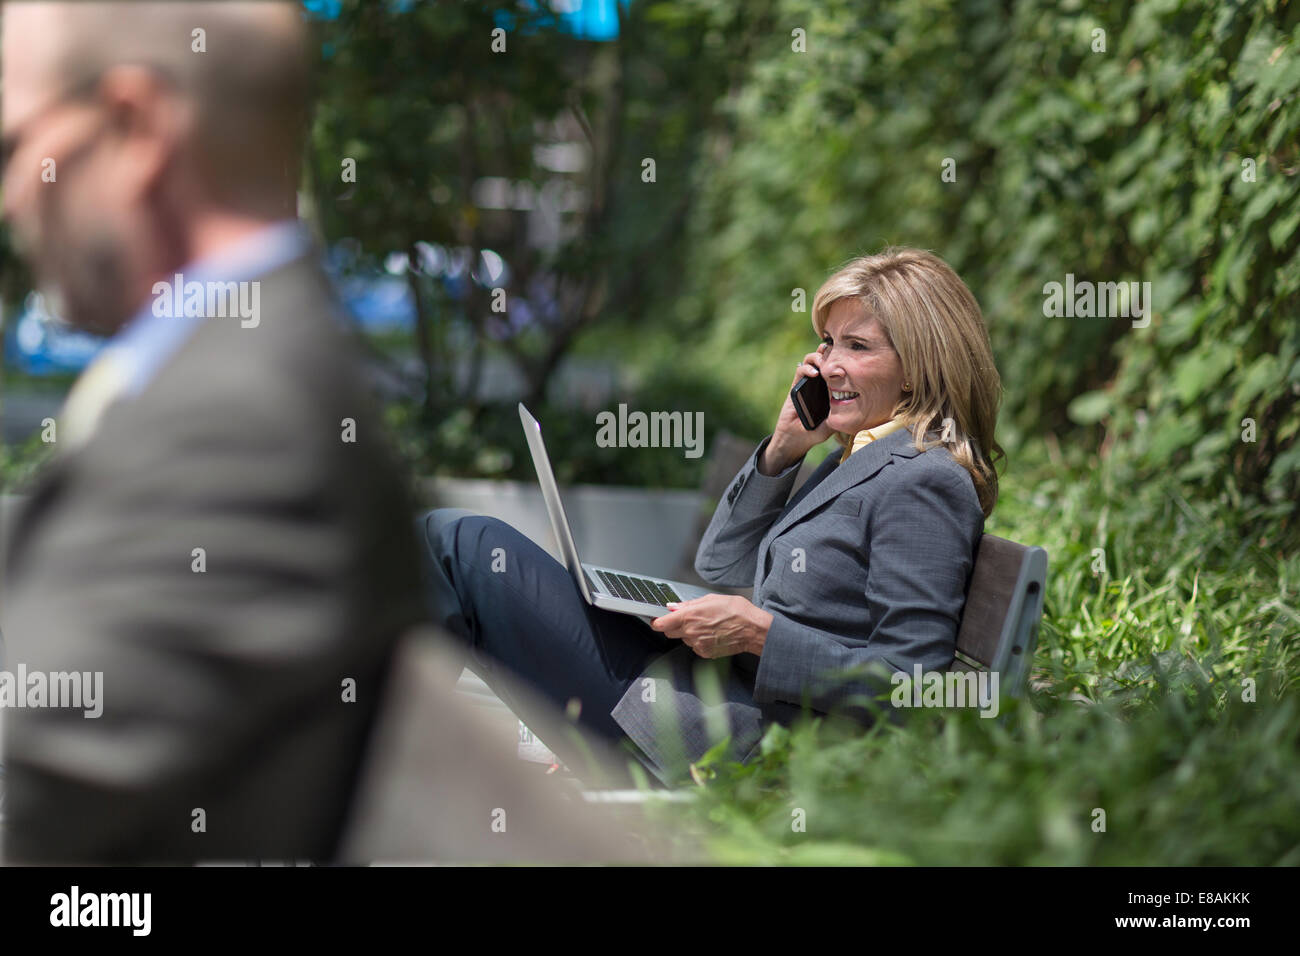 Mature businesswoman on phone with laptop - Stock Image